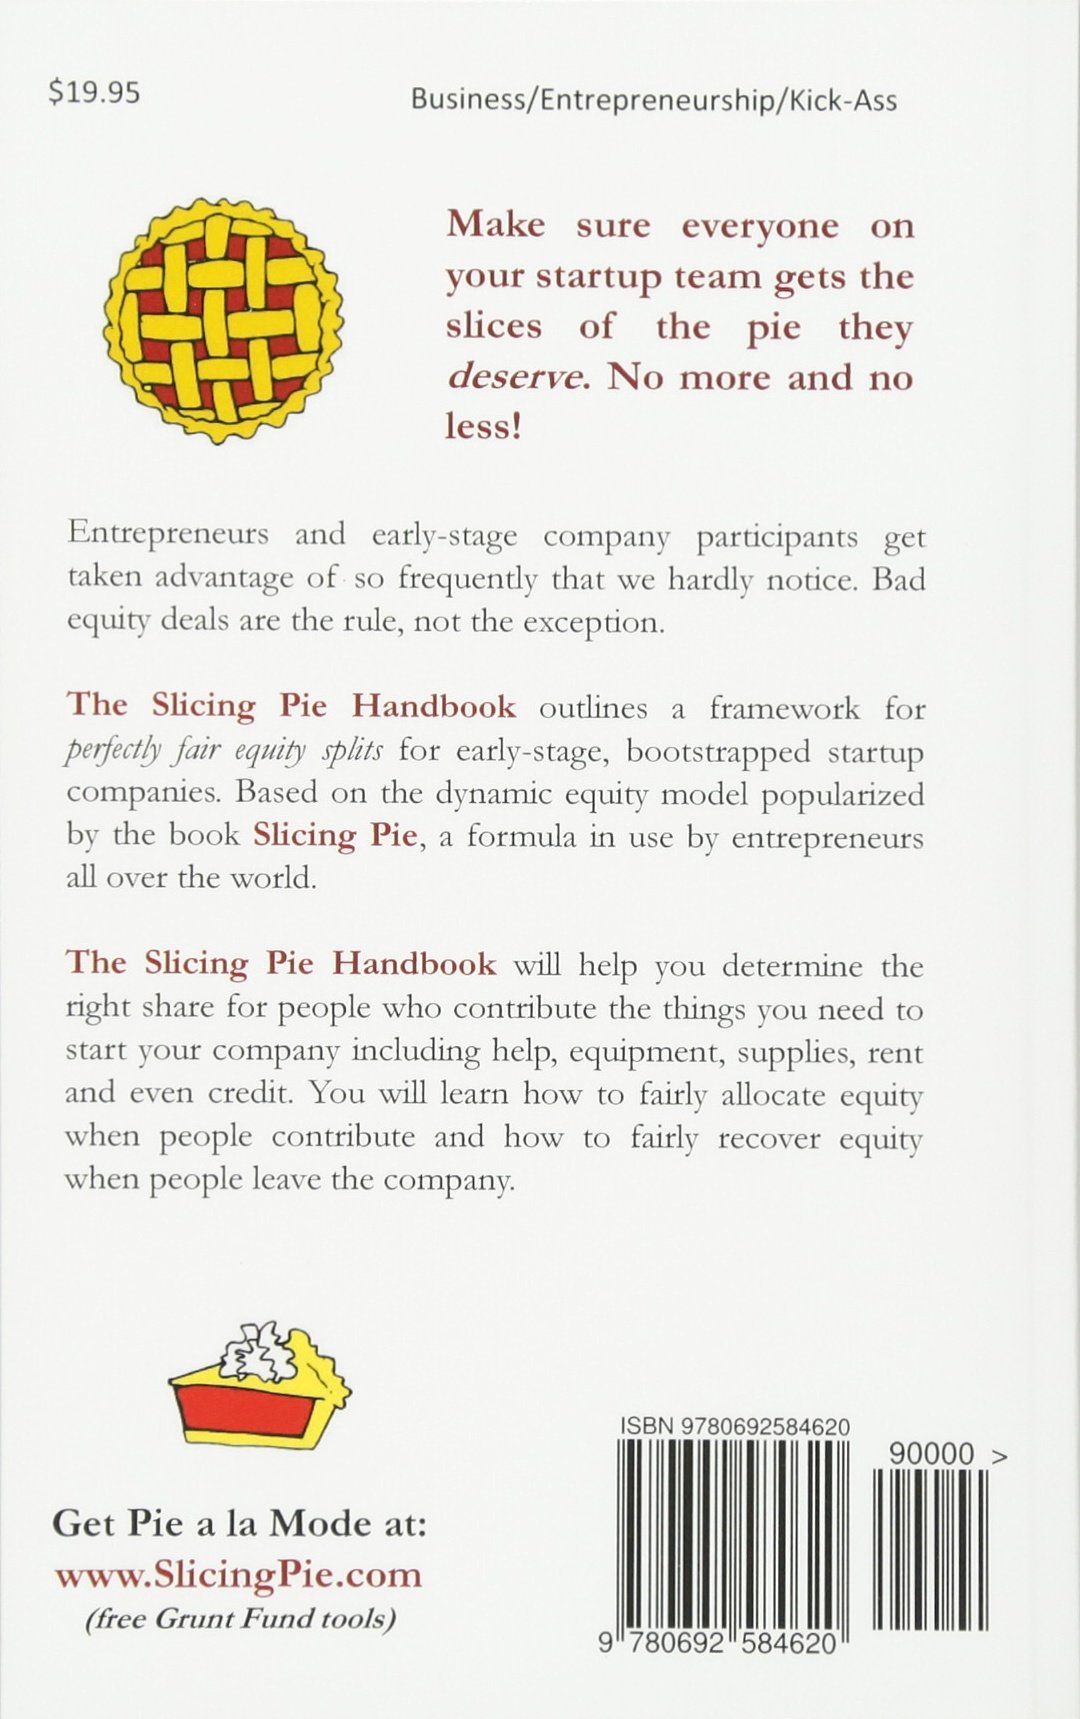 Slicing Pie Handbook Perfectly Fair Equity Splits For Bootstrapped